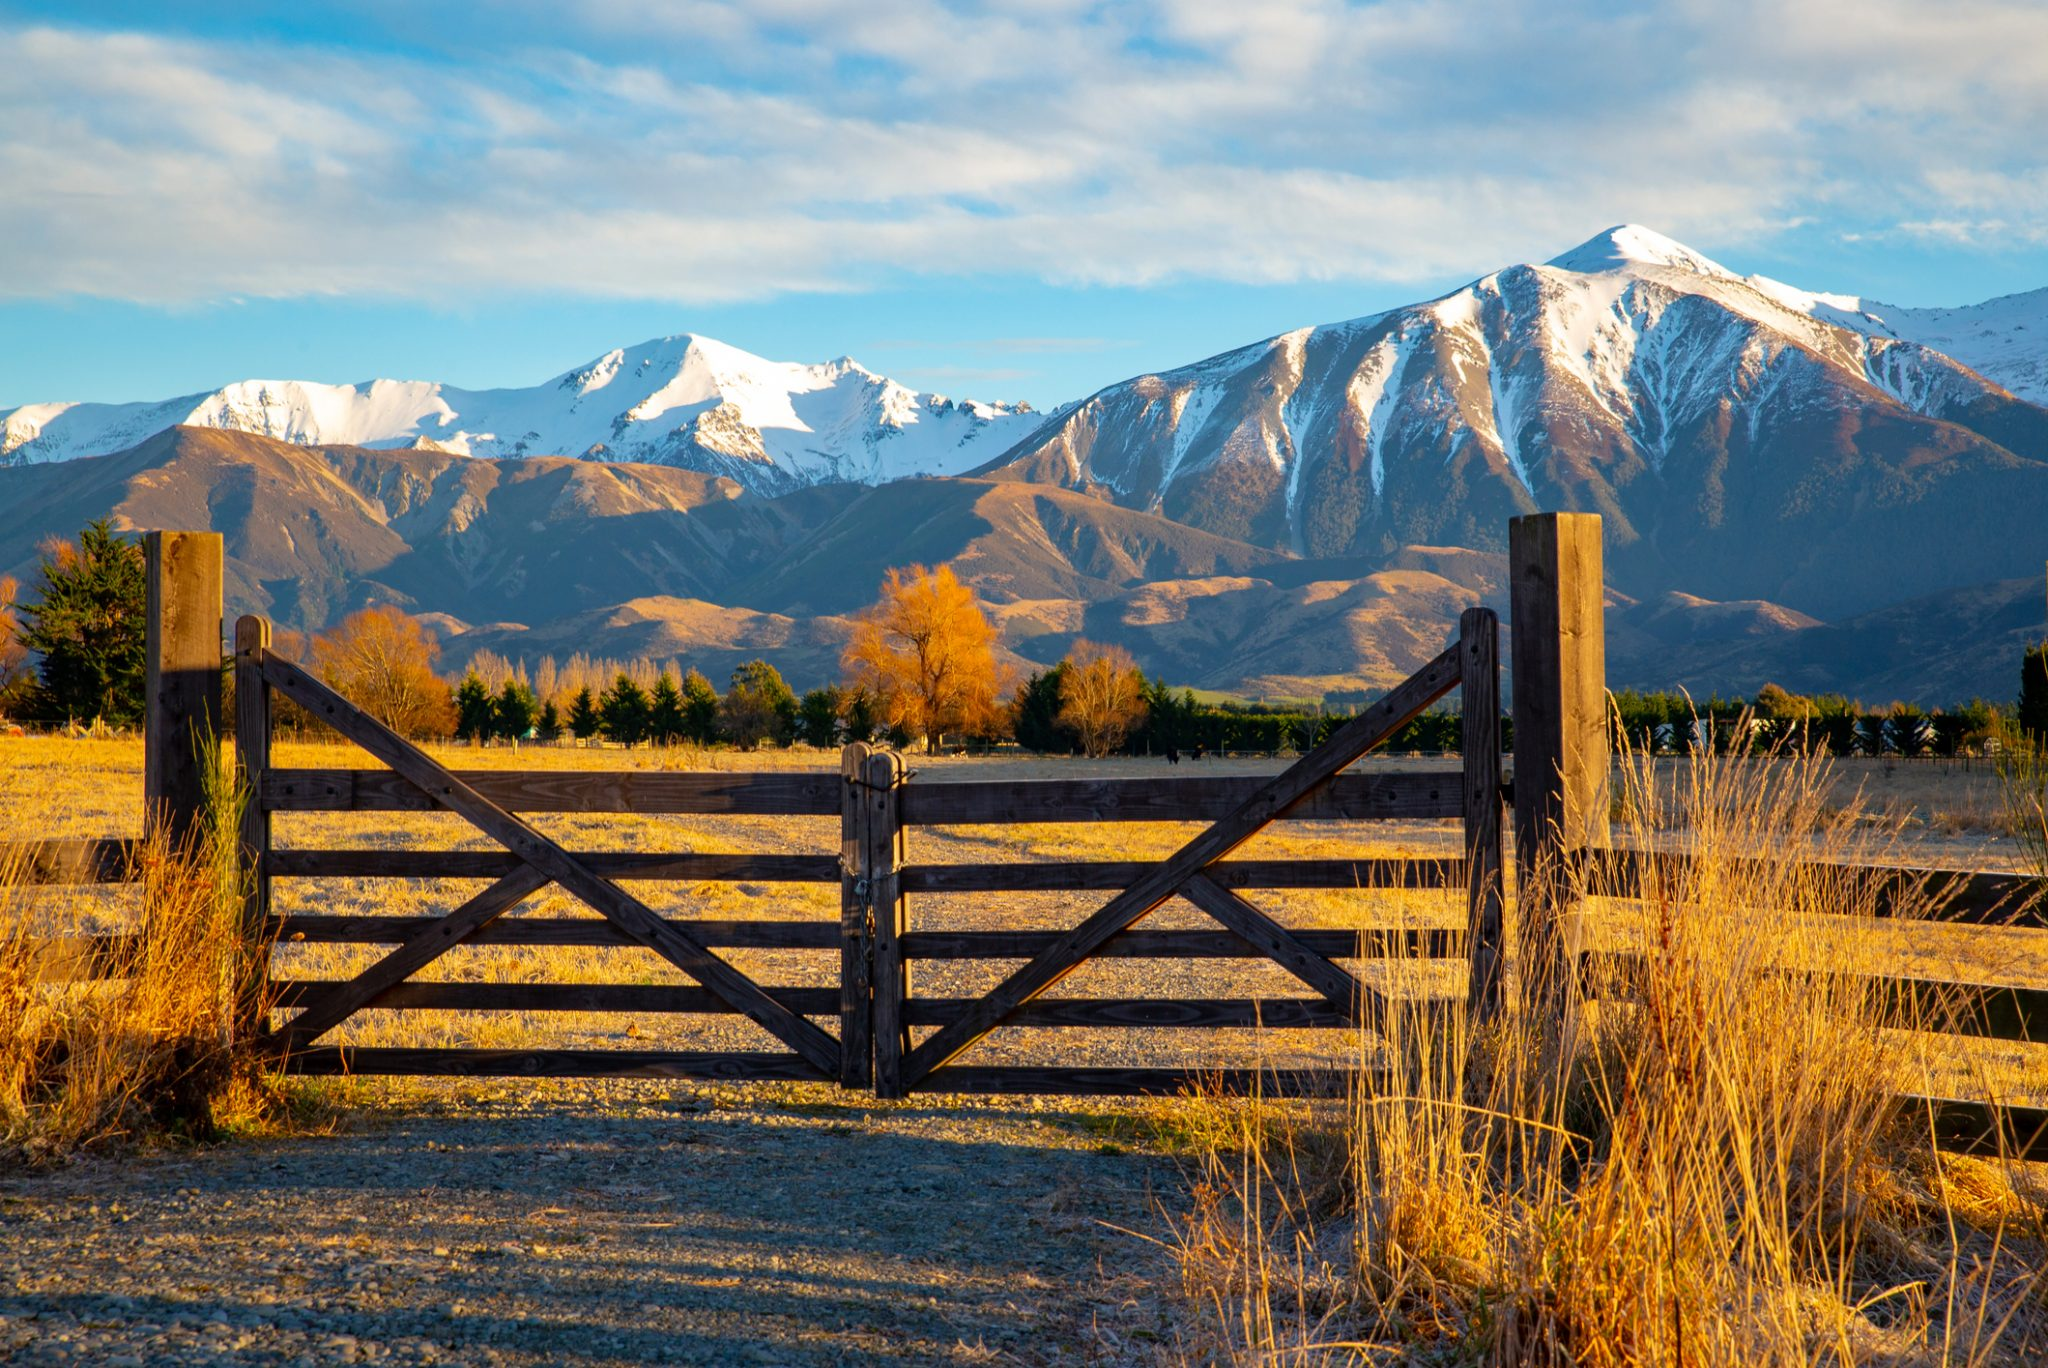 Picturesque snowy mountains behind a wooden farm gate.